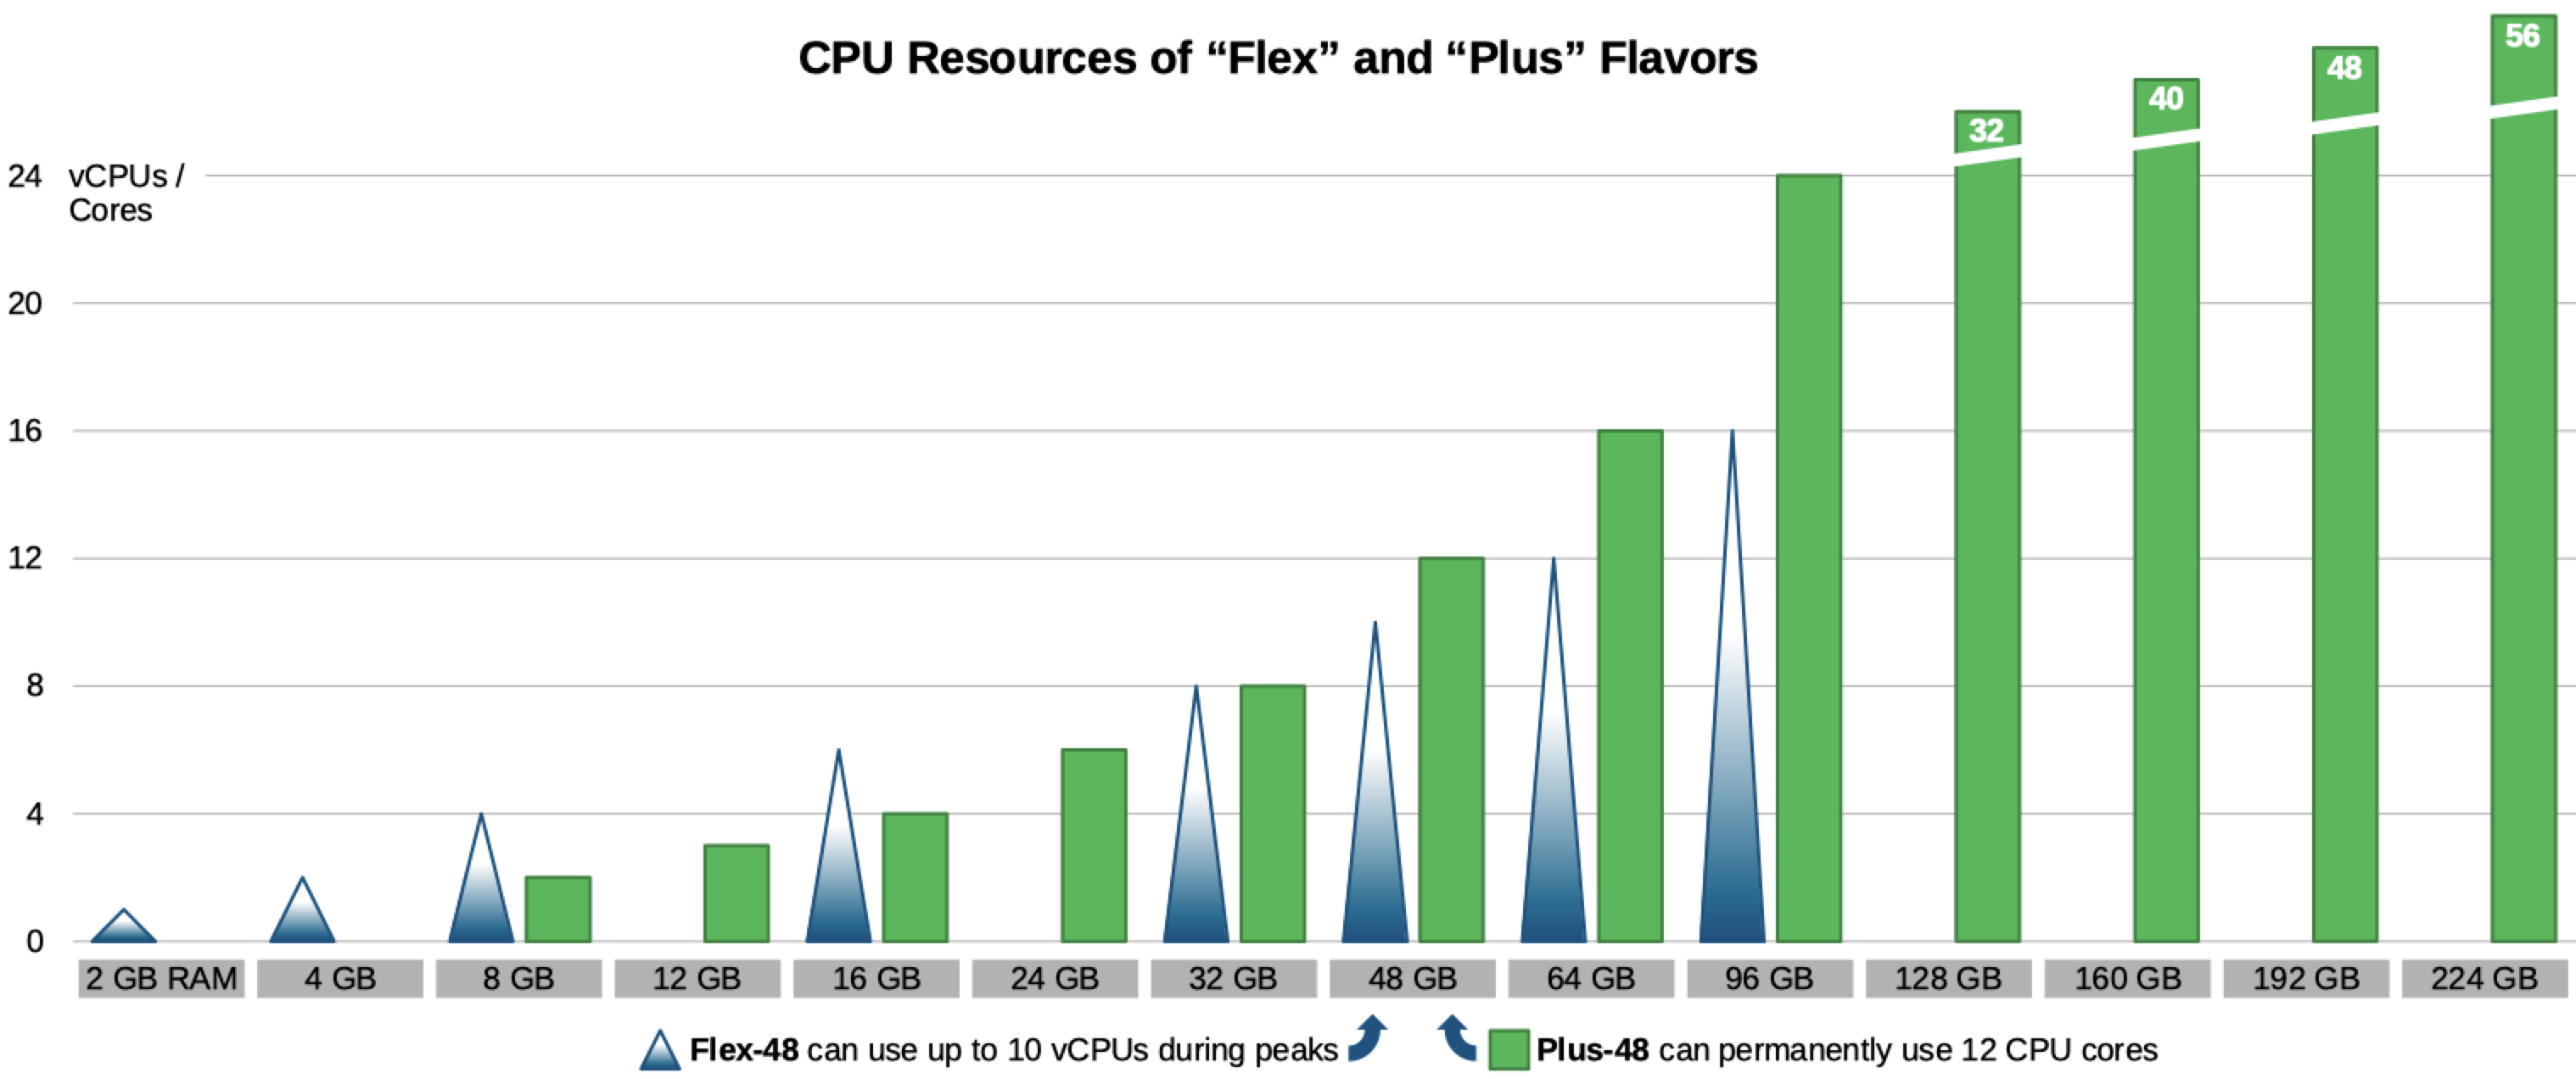 "CPU Resources of ""Flex"" and ""Plus"" Flavors: Comparison"